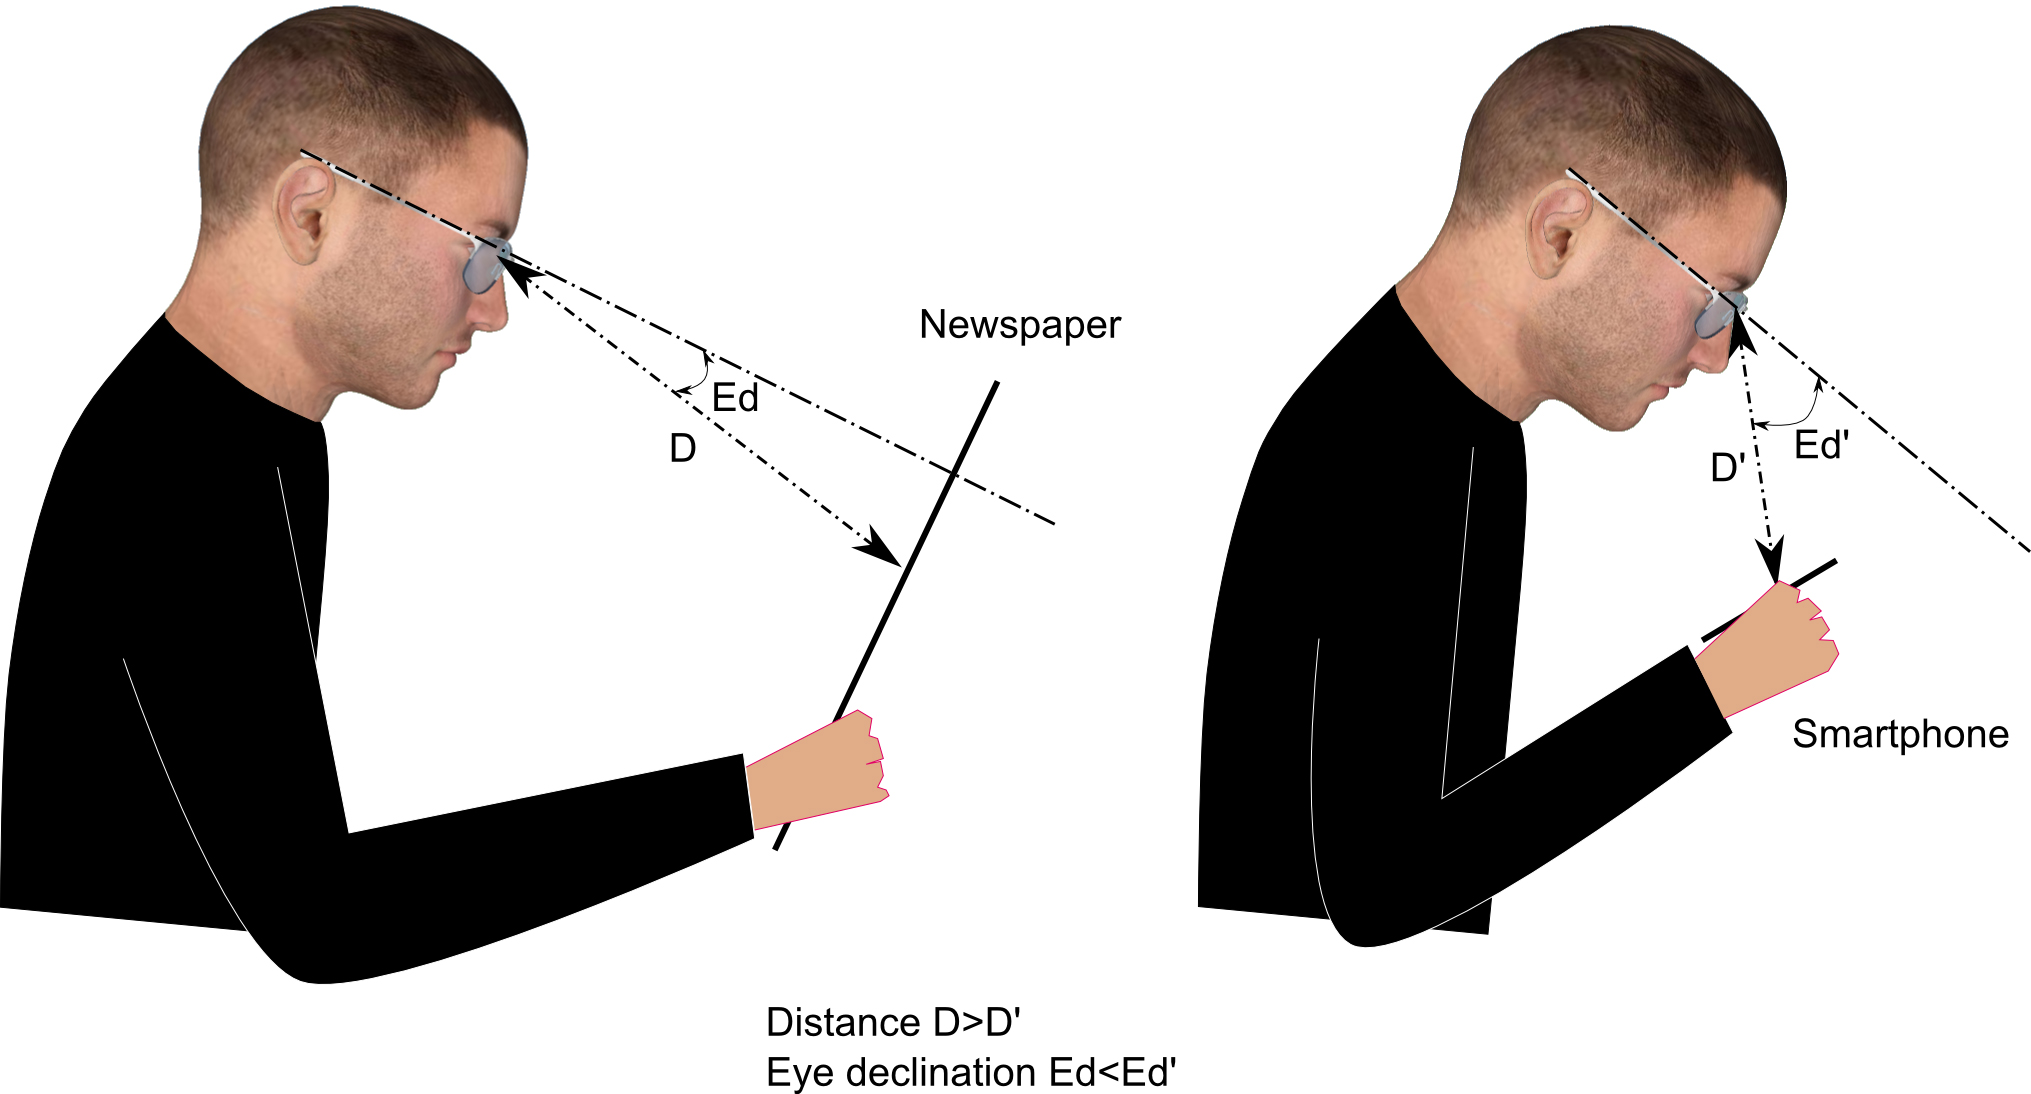 Comparison of reading distances and eye declination angles between a paper  medium and a digital screen